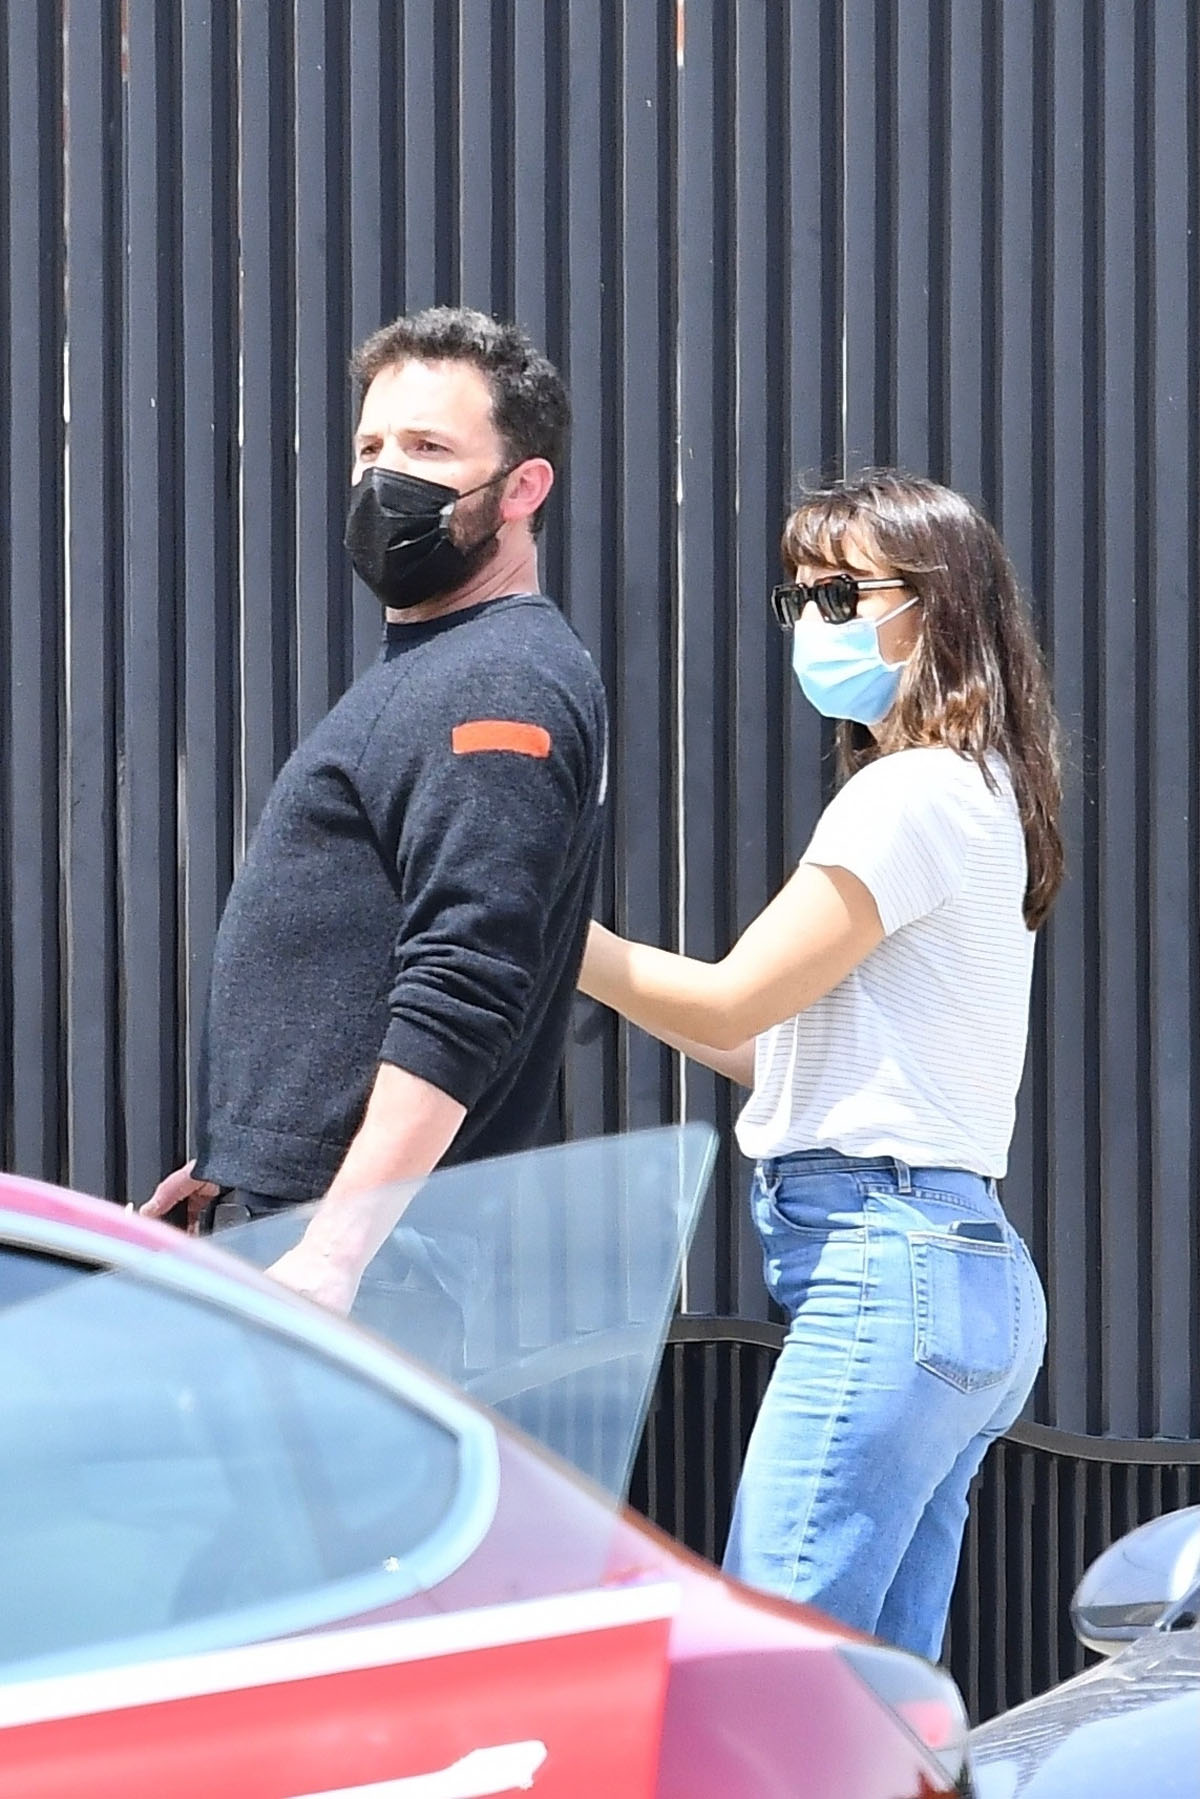 Jennifer Garner and Ben Affleck attend their son's swimming class together and get chatty in Brentwood